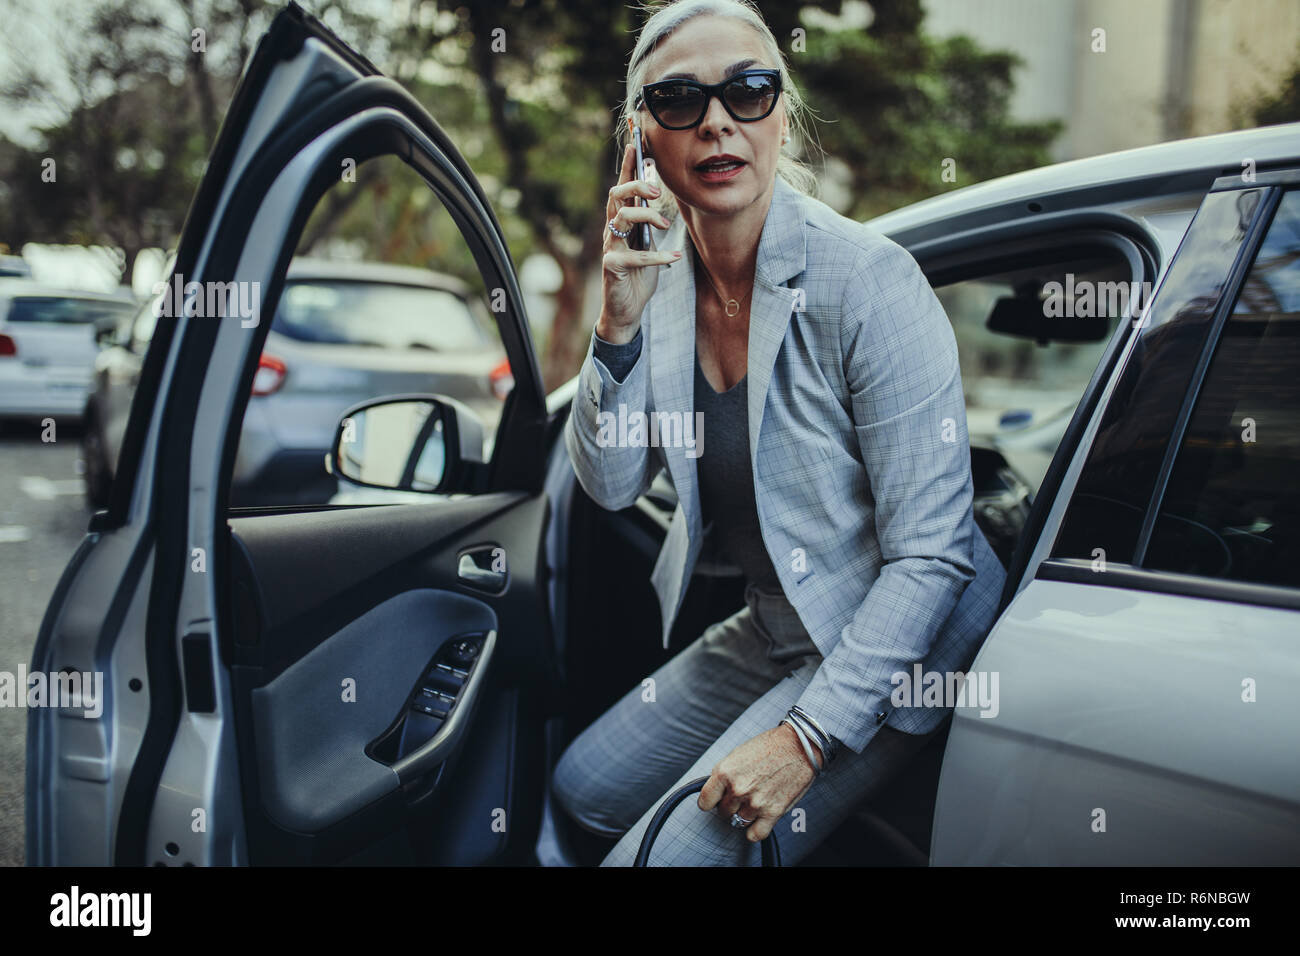 business woman getting out car stock photos business woman getting out car stock images alamy. Black Bedroom Furniture Sets. Home Design Ideas